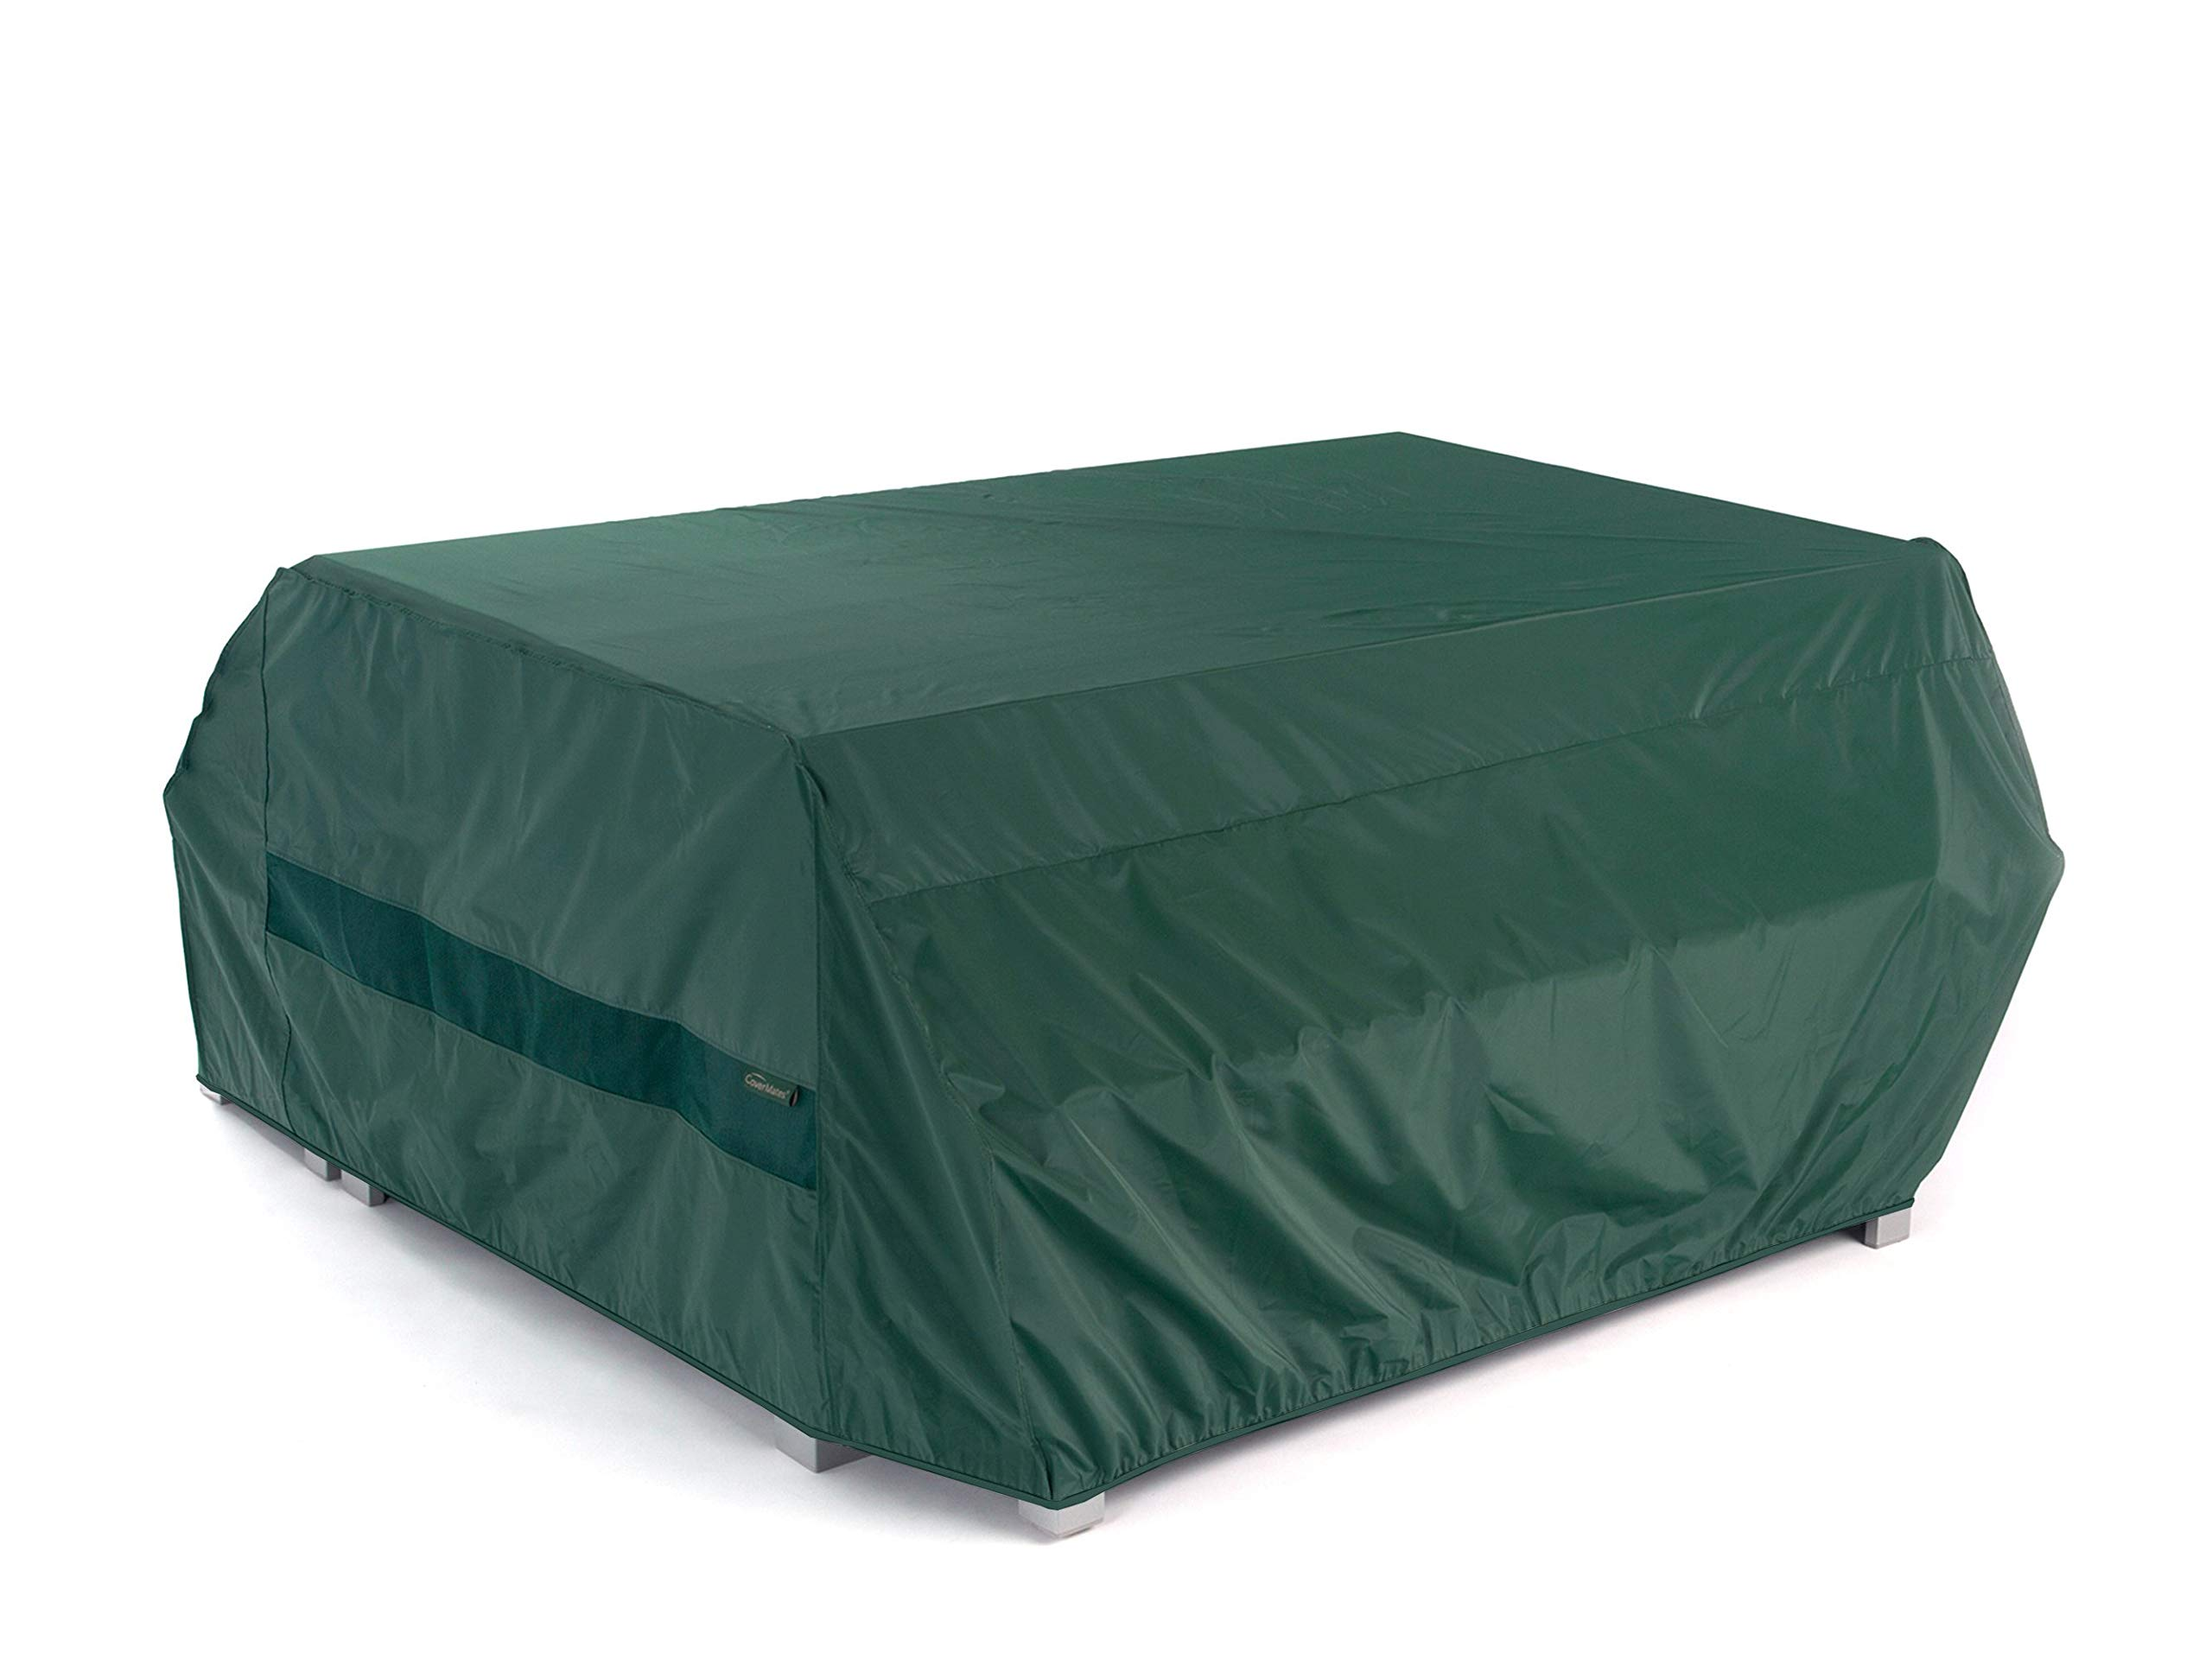 Covermates - Picnic Table Cover - 76W x 62D x 32H - Classic Collection - 2 YR Warranty - Year Around Protection - Green